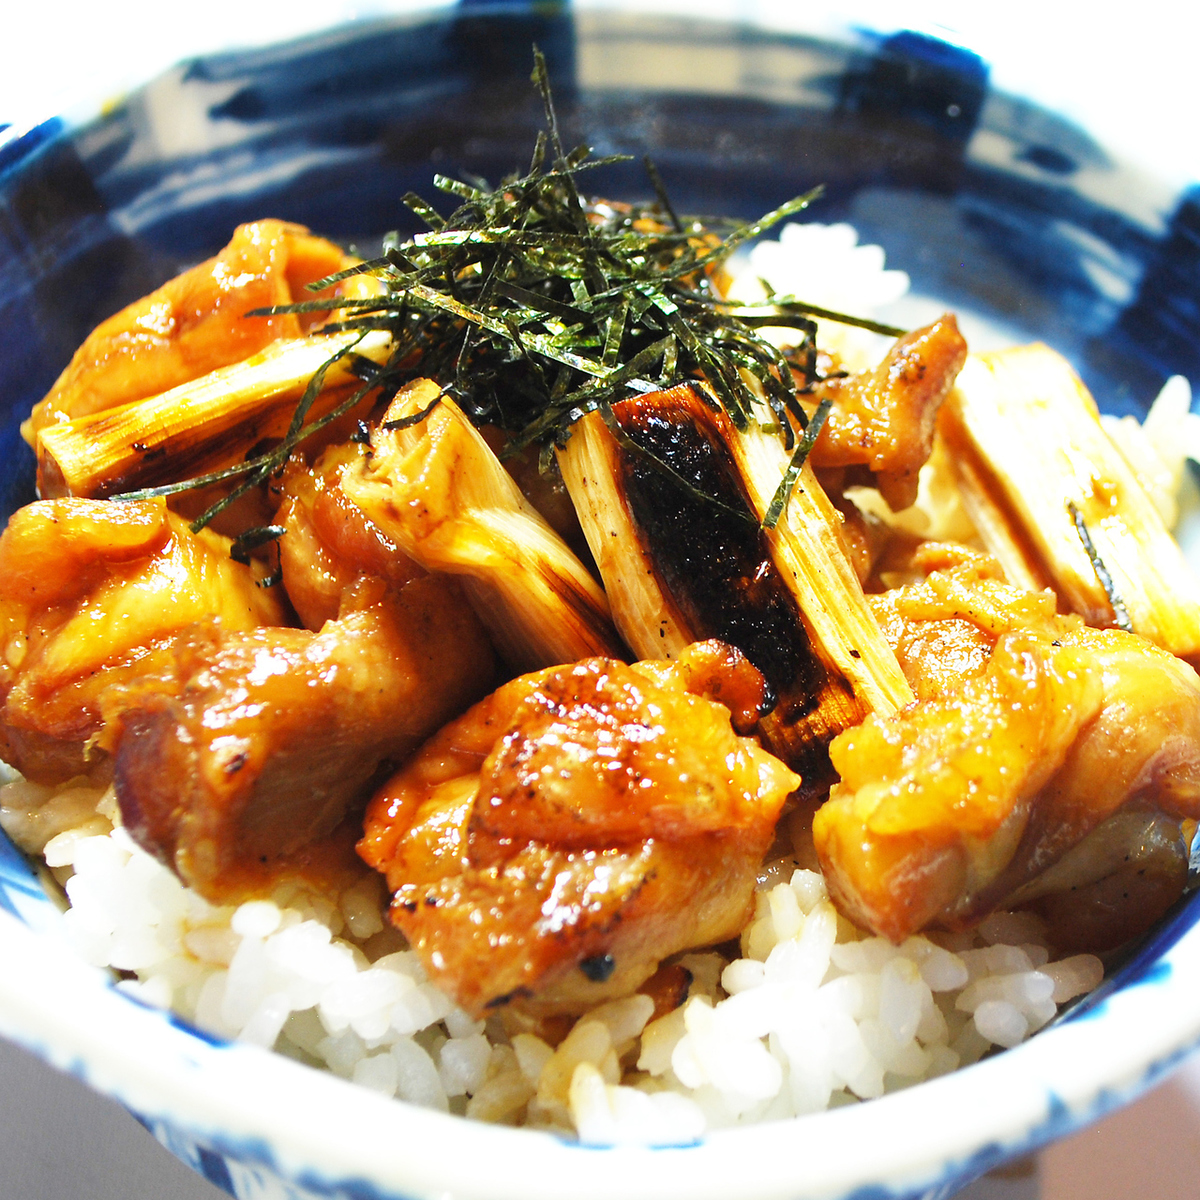 A little late lunch ★ 15 o'clock meals 【Yakitori bowl】